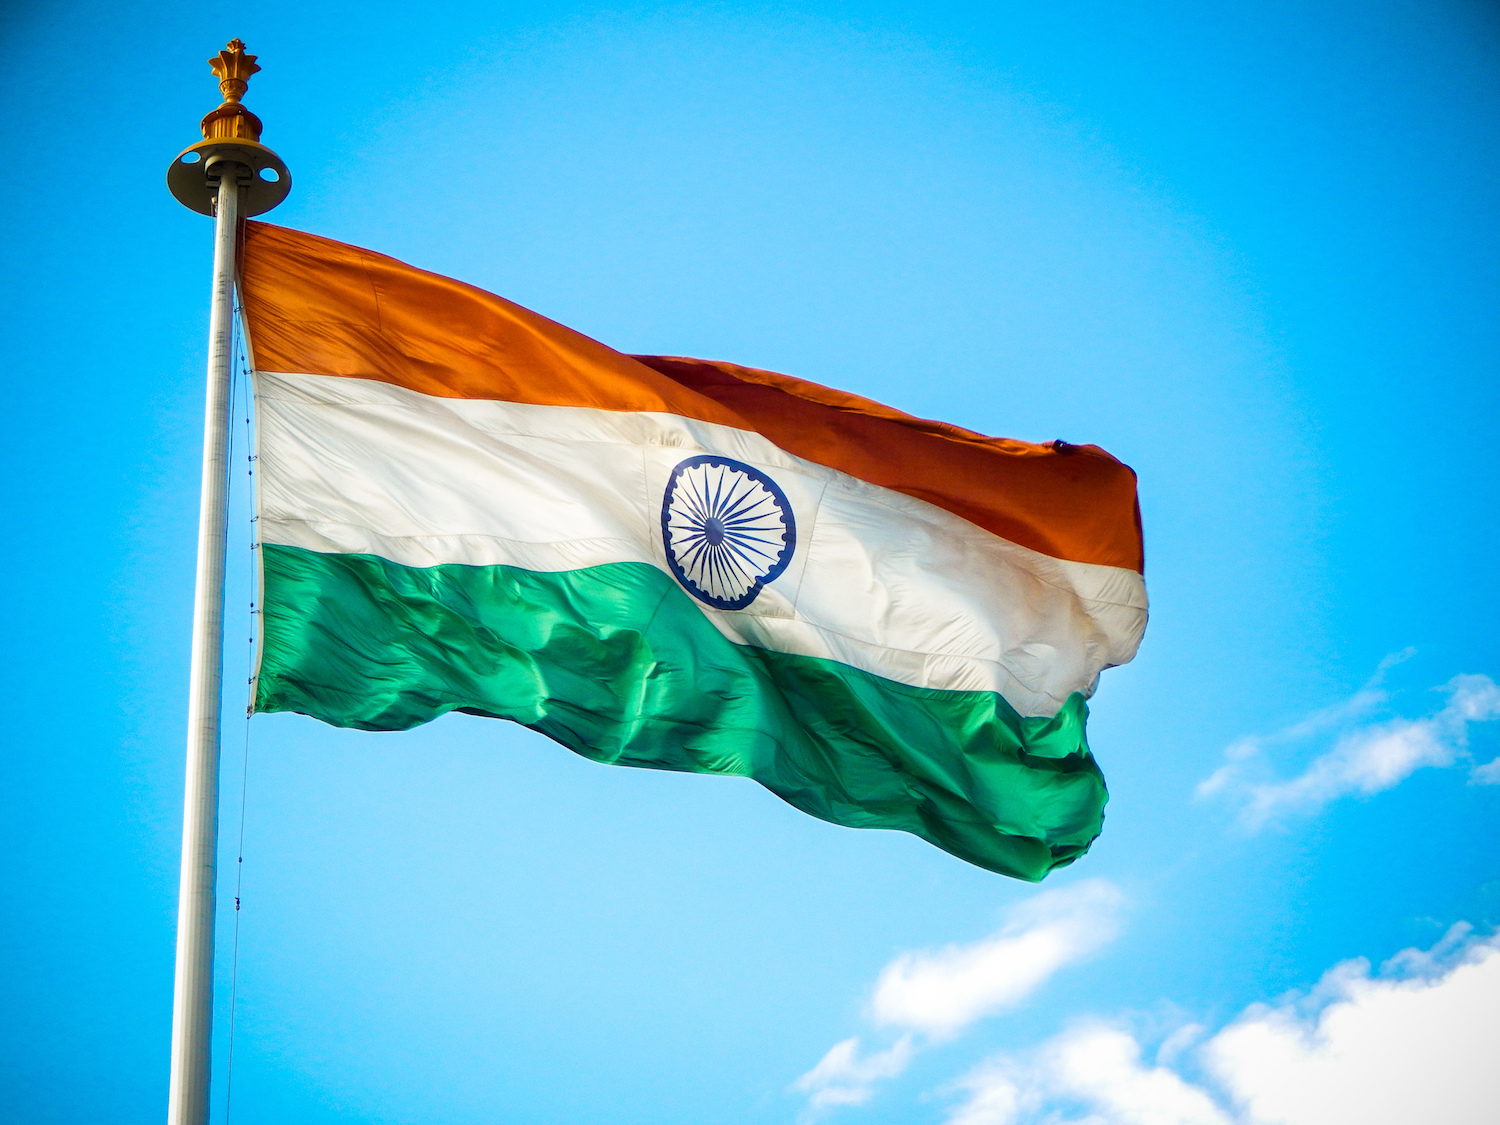 coindesk.com - Crypto Startups Barred from Indian Central Bank Fintech Sandbox